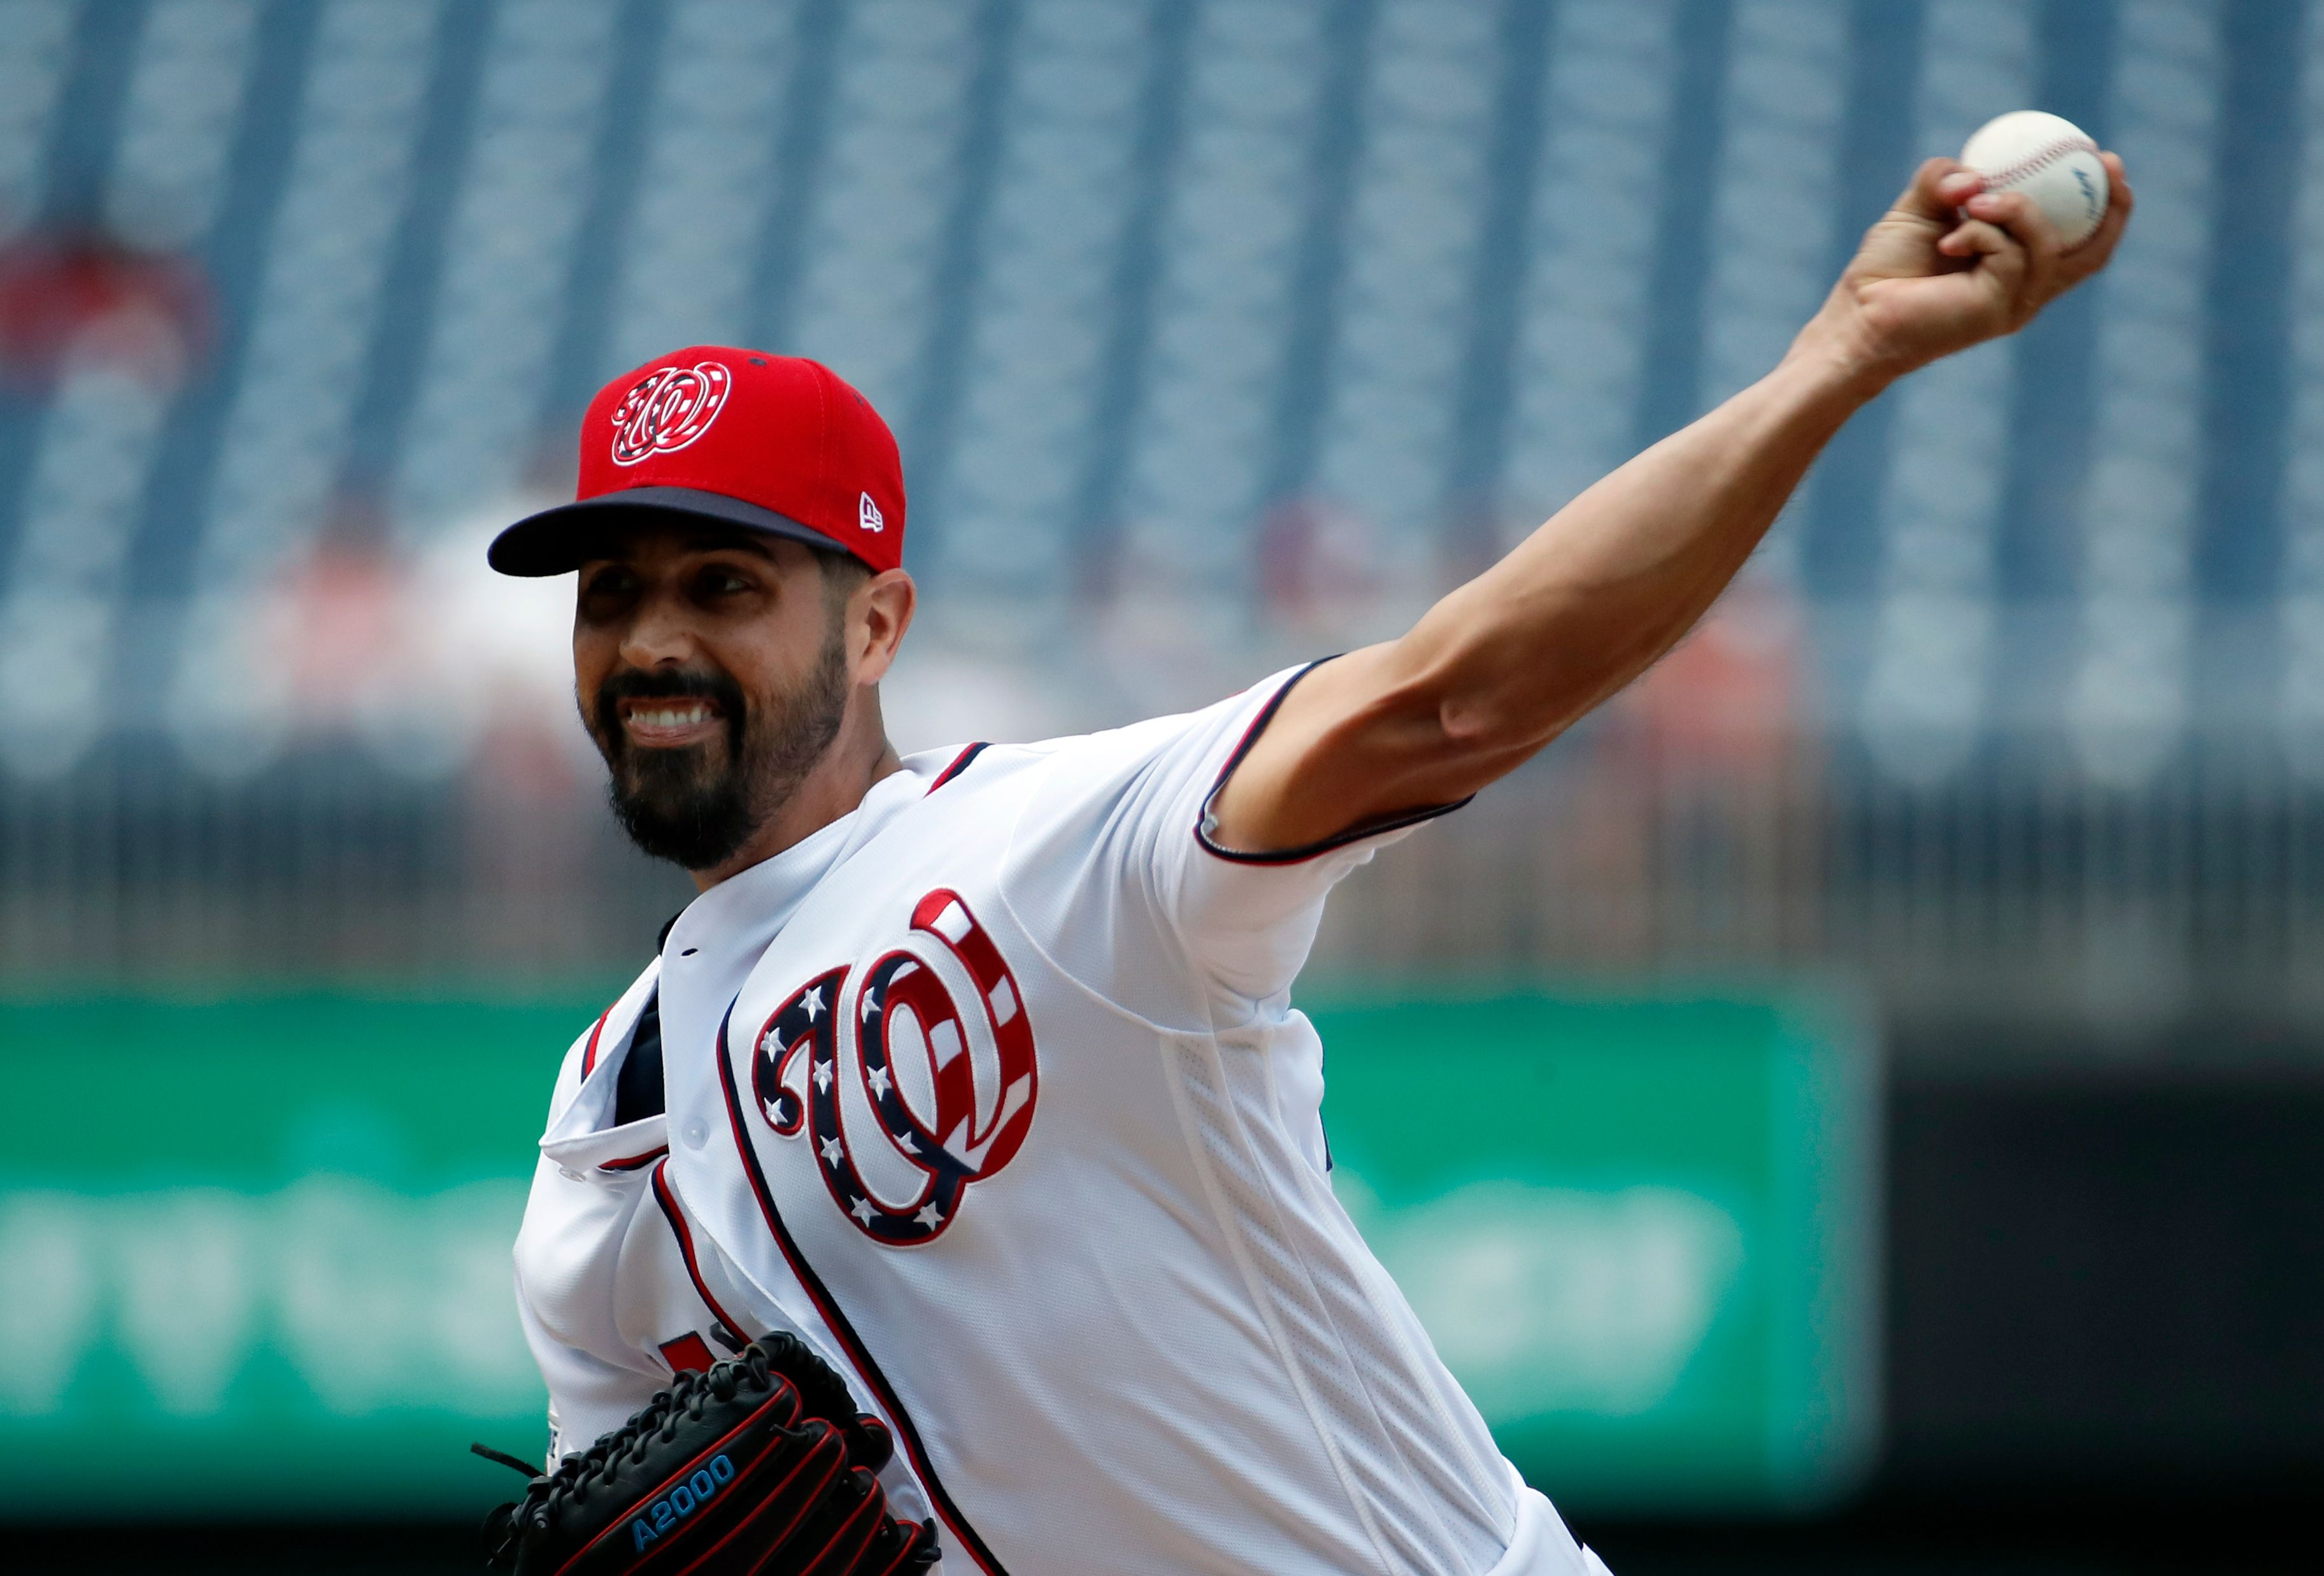 Nationals top Braves 6-3, Gio Gonzalez ends personal skid